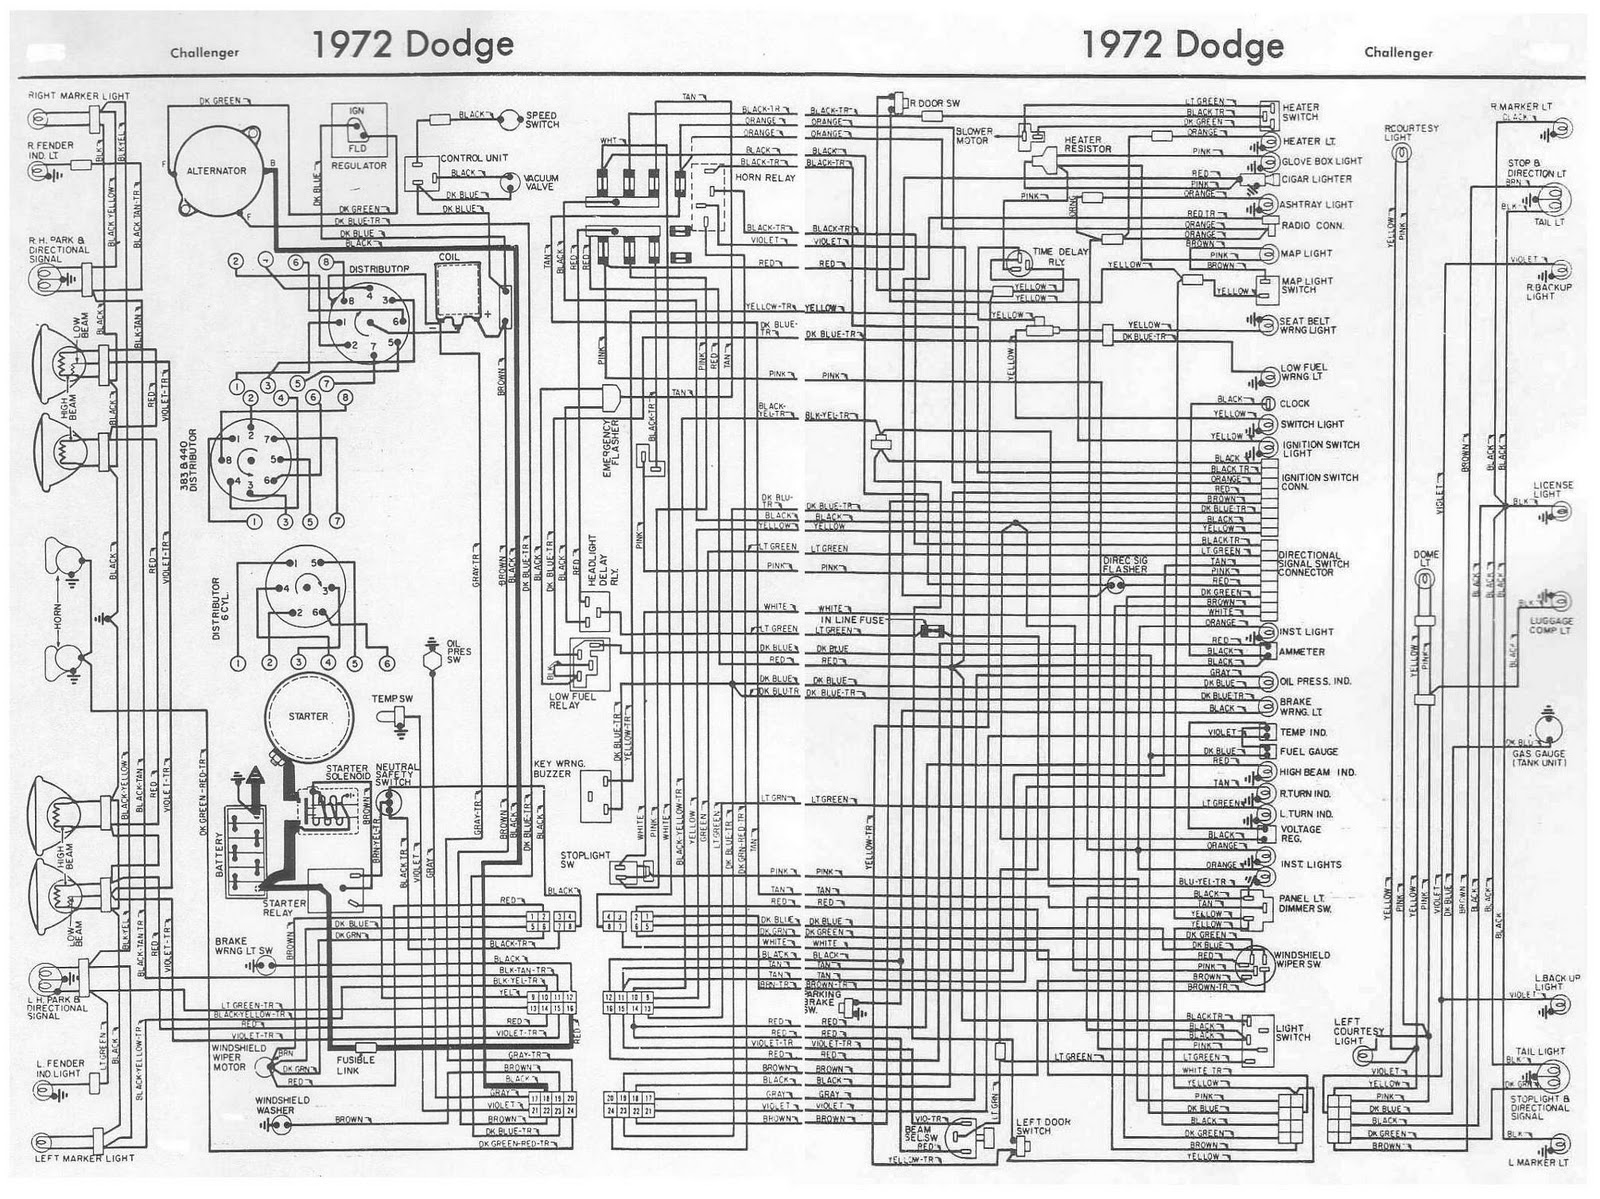 Dodge+Challenger+1972+Complete+Wiring+Diagram dodge challenger 1972 complete wiring diagram all about wiring 1970 dodge charger wiring diagram at gsmx.co